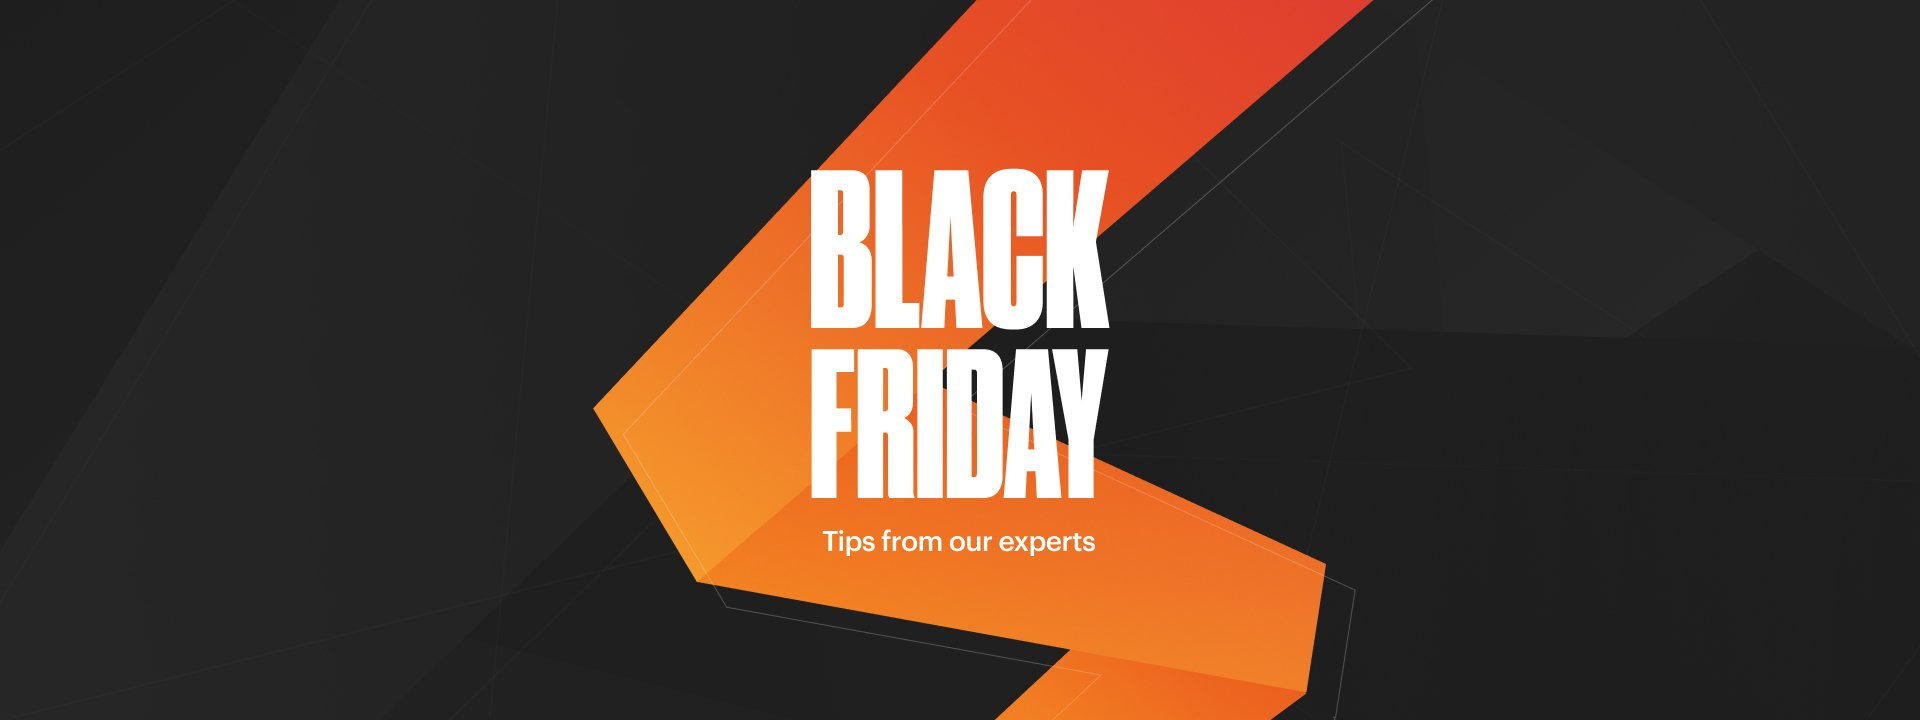 Black Friday 2020: Get top tips from our experts [VIDEO]